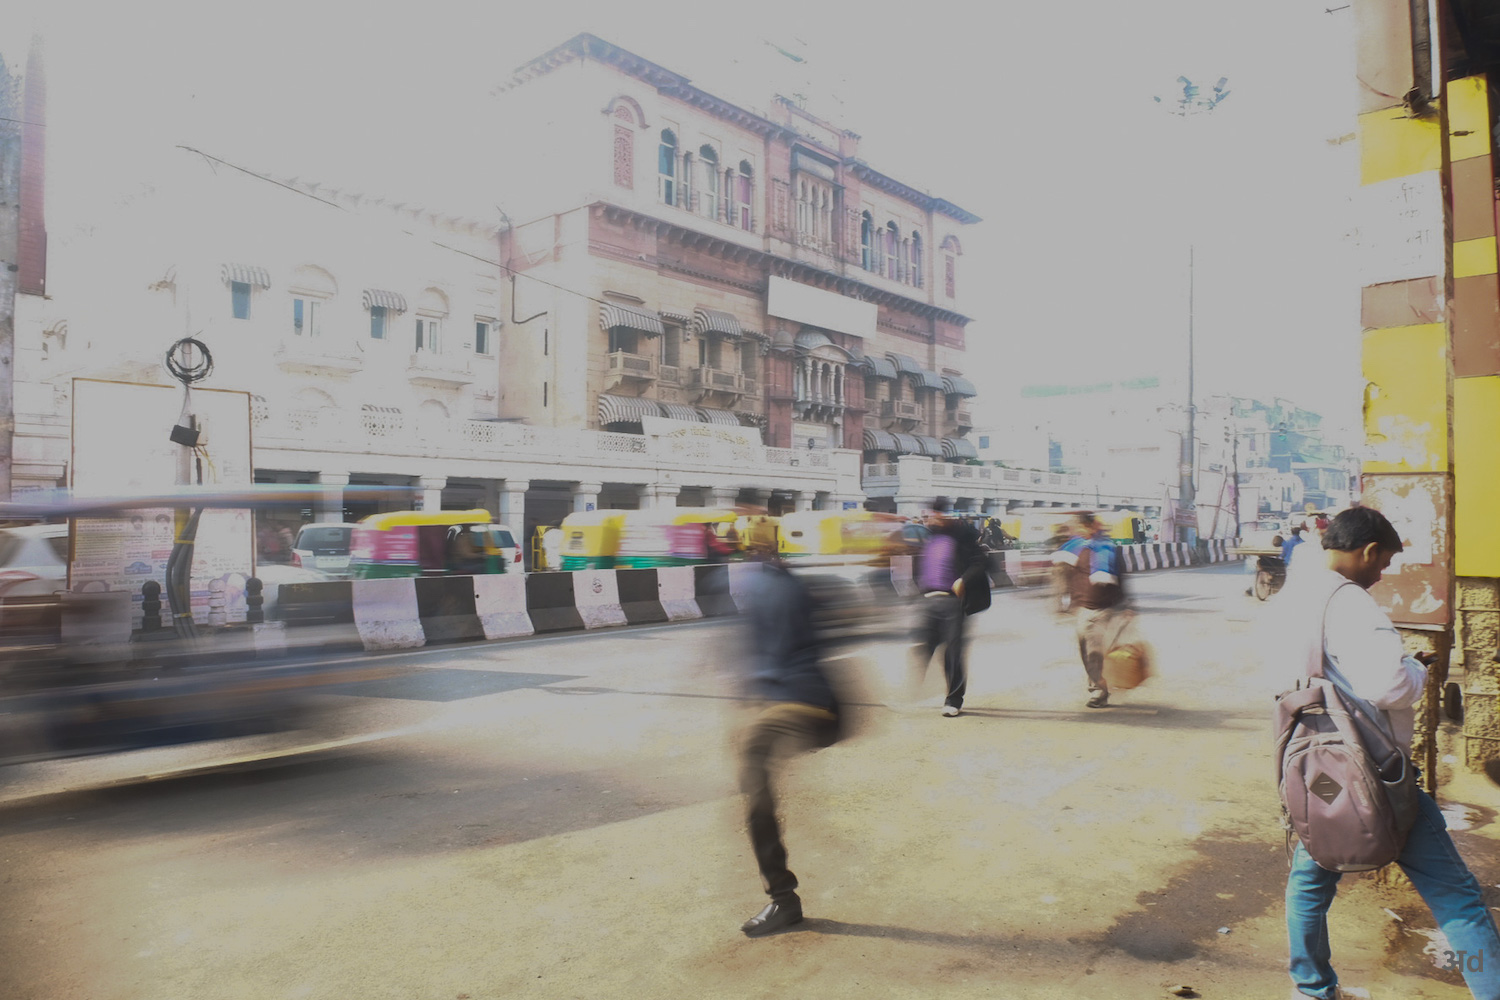 Beginnings of the Chandni Chowk hustle and bustle